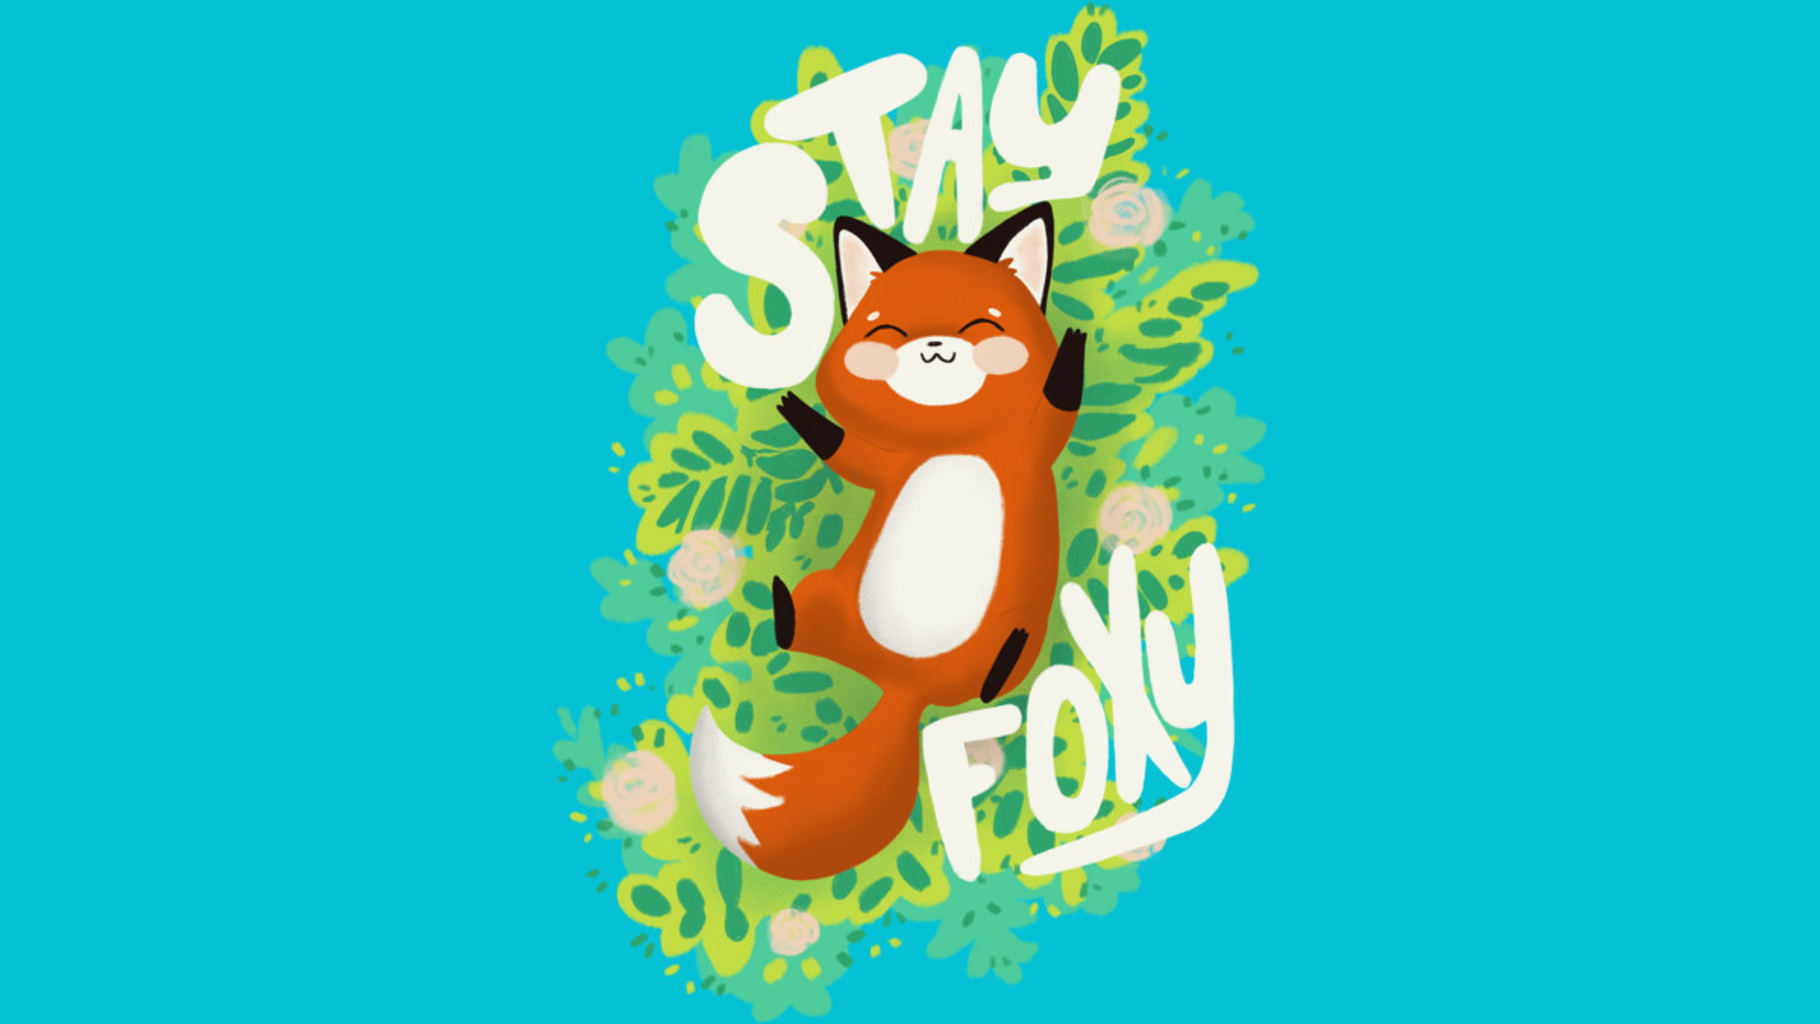 Design by Humans: Stay Foxy